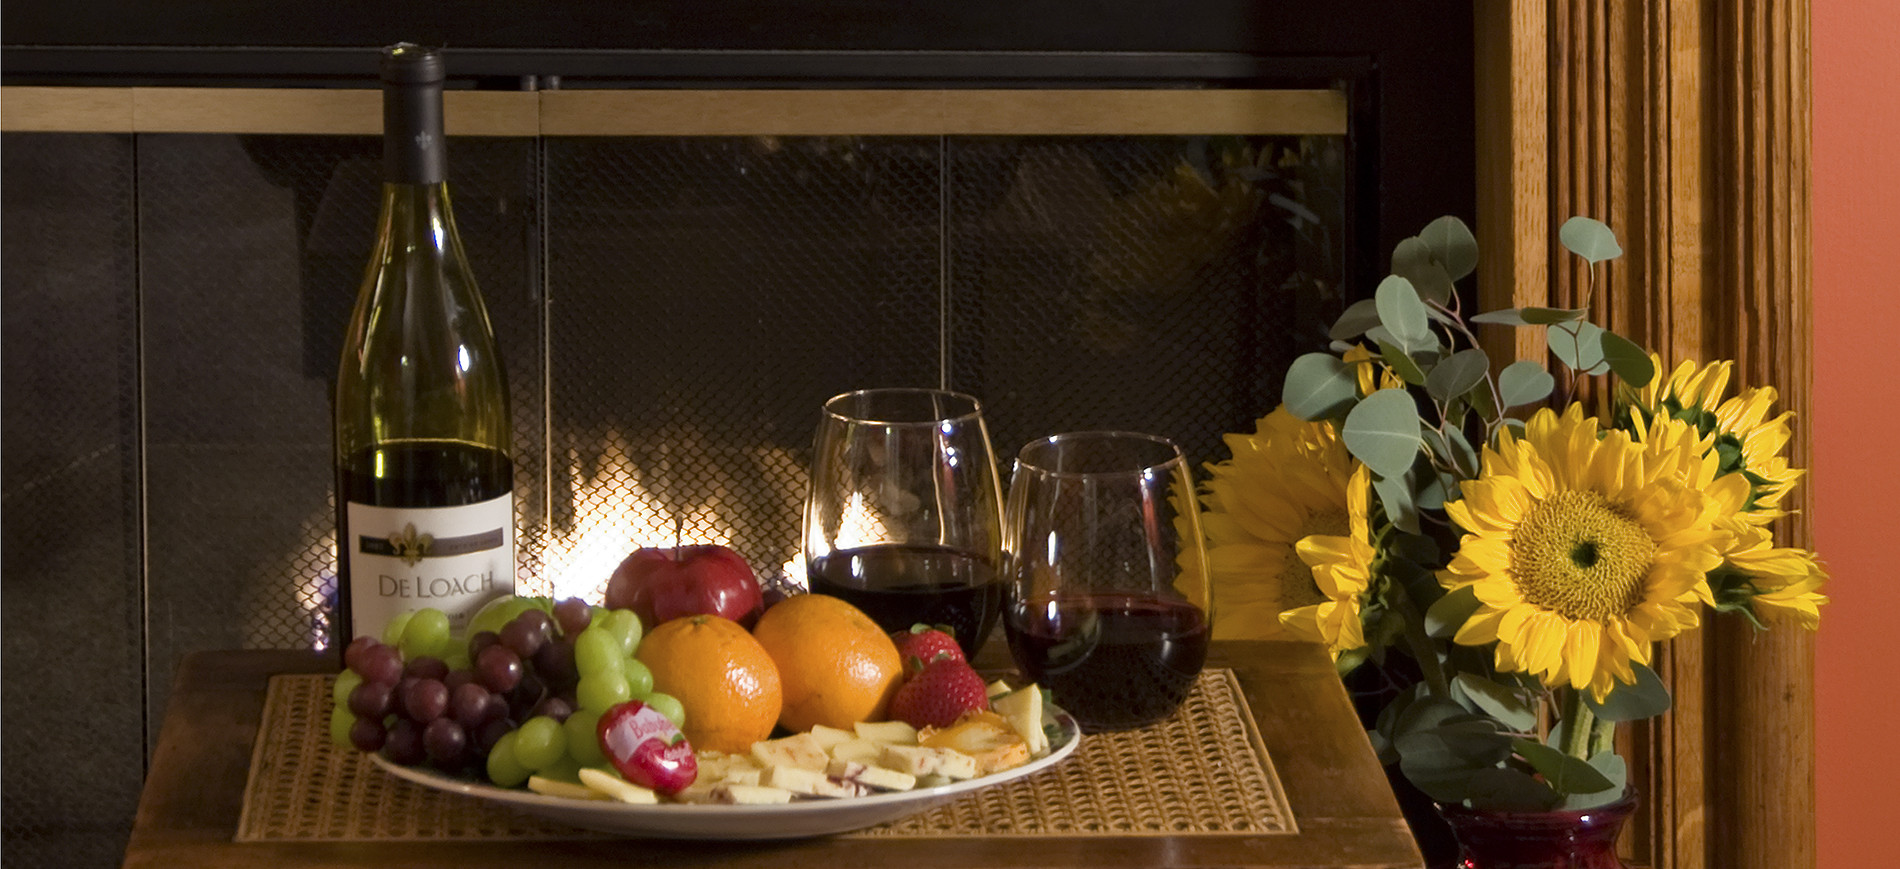 wine bottle, fruit & cheese plate, two glasses wine, sunflowers with fireplace behind